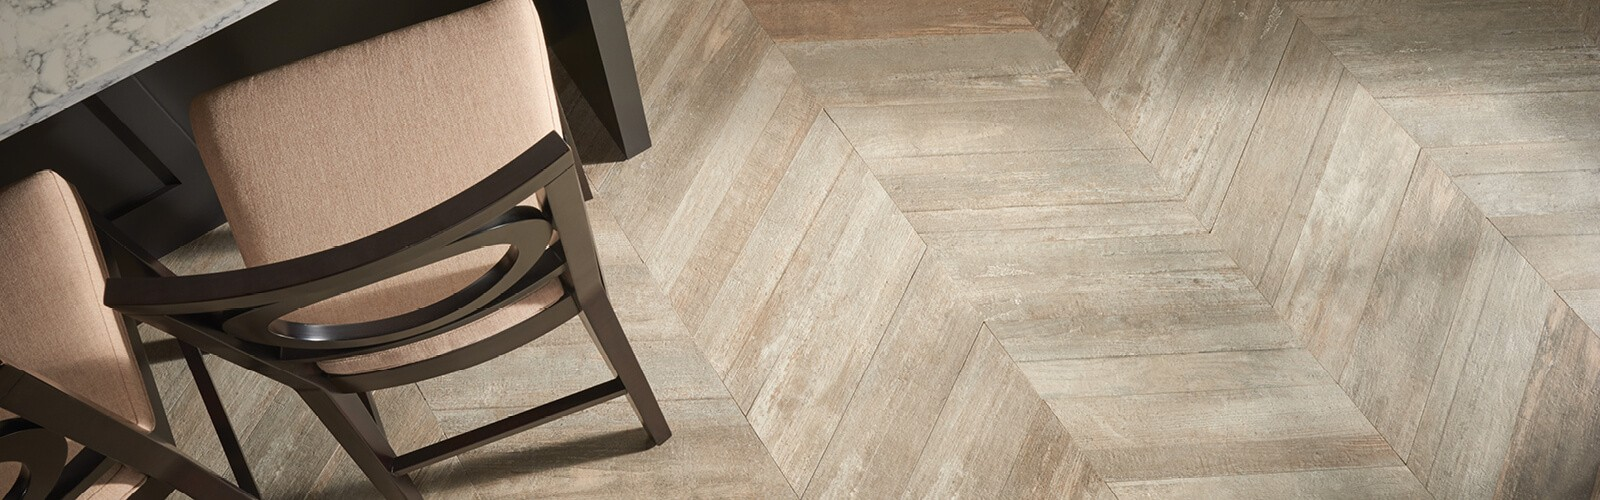 Tile flooring | Piedmont Floors